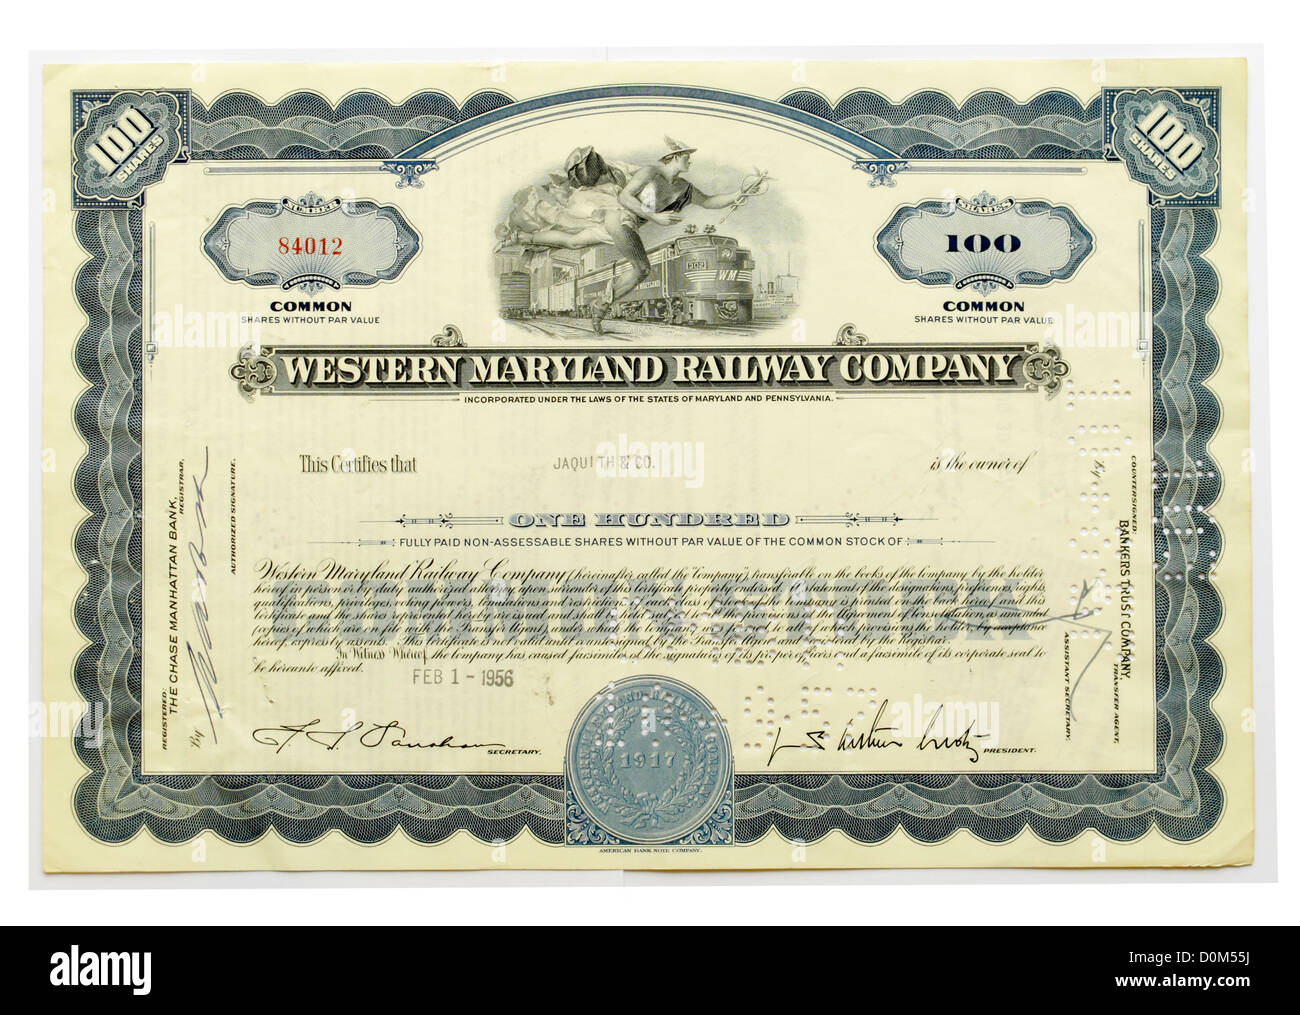 Share Certificate Of The Western Maryland Railway Company Company – Company Share Certificates